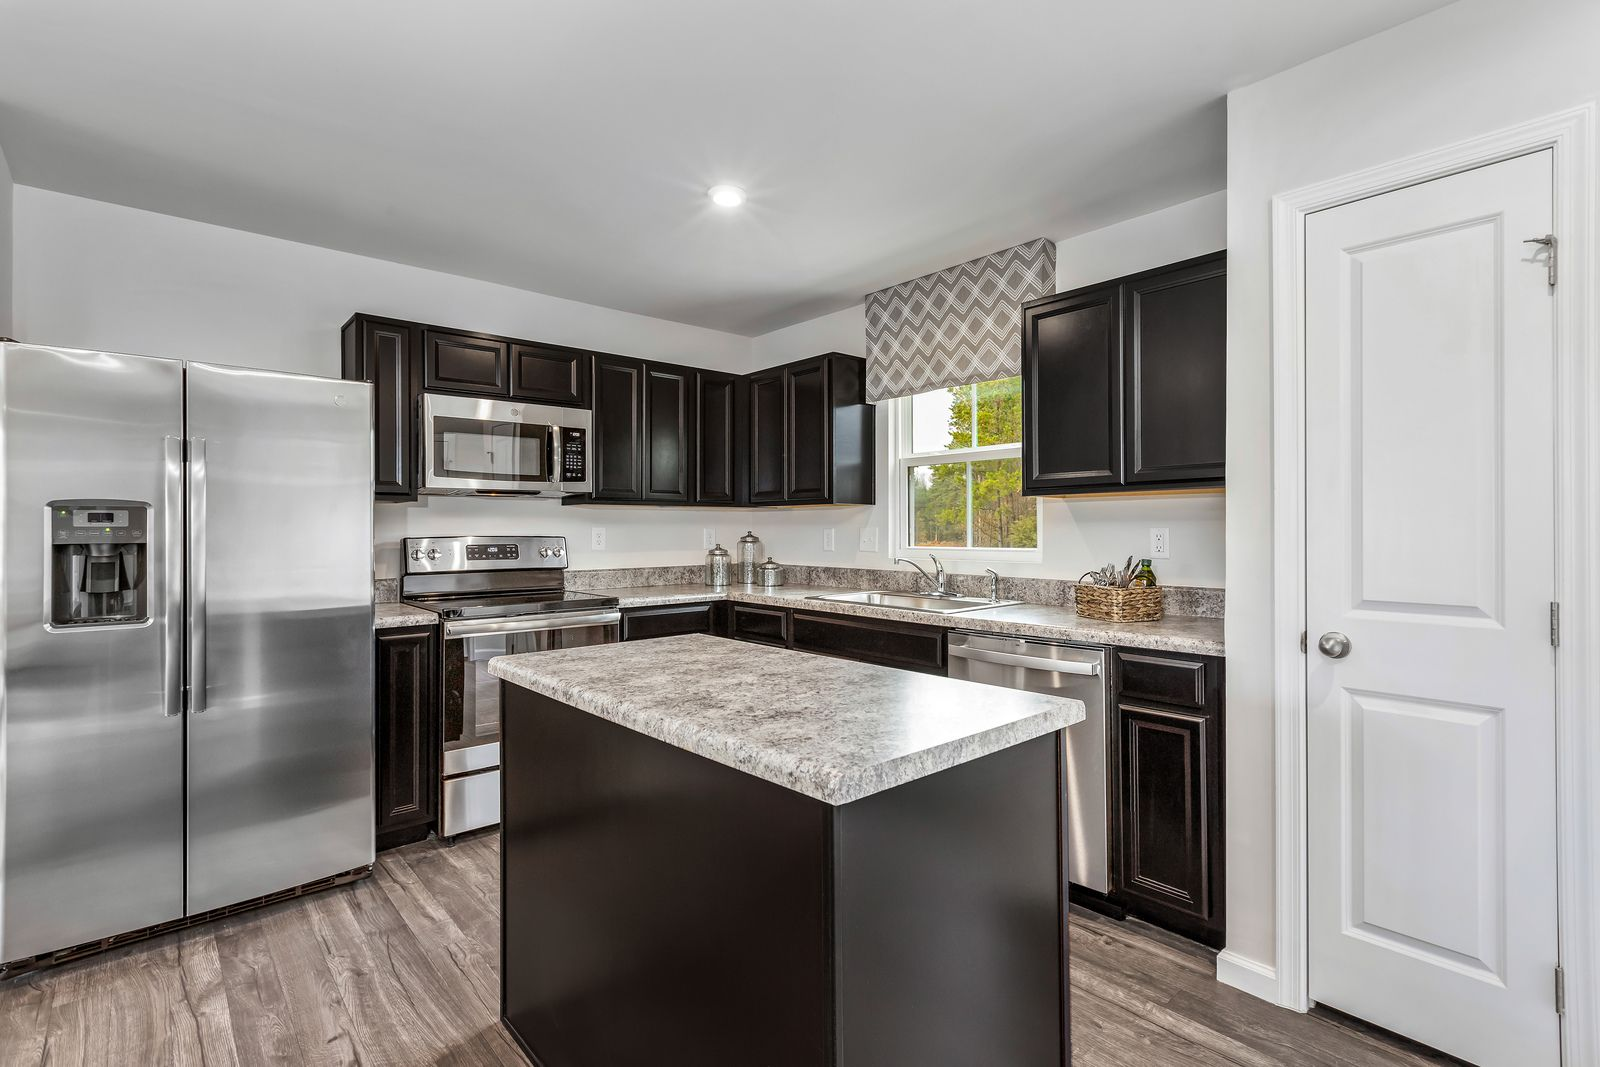 Kitchen featured in the Aspen By Ryan Homes in Akron, OH